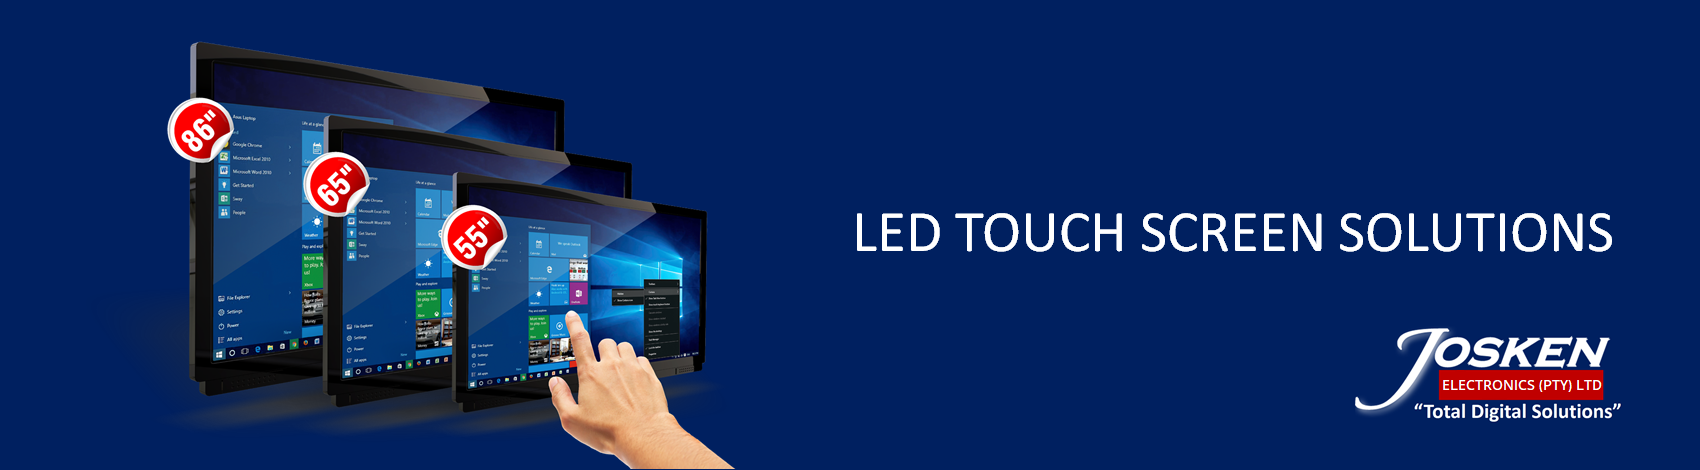 LED-TOUCH-SCREEN-BANNER